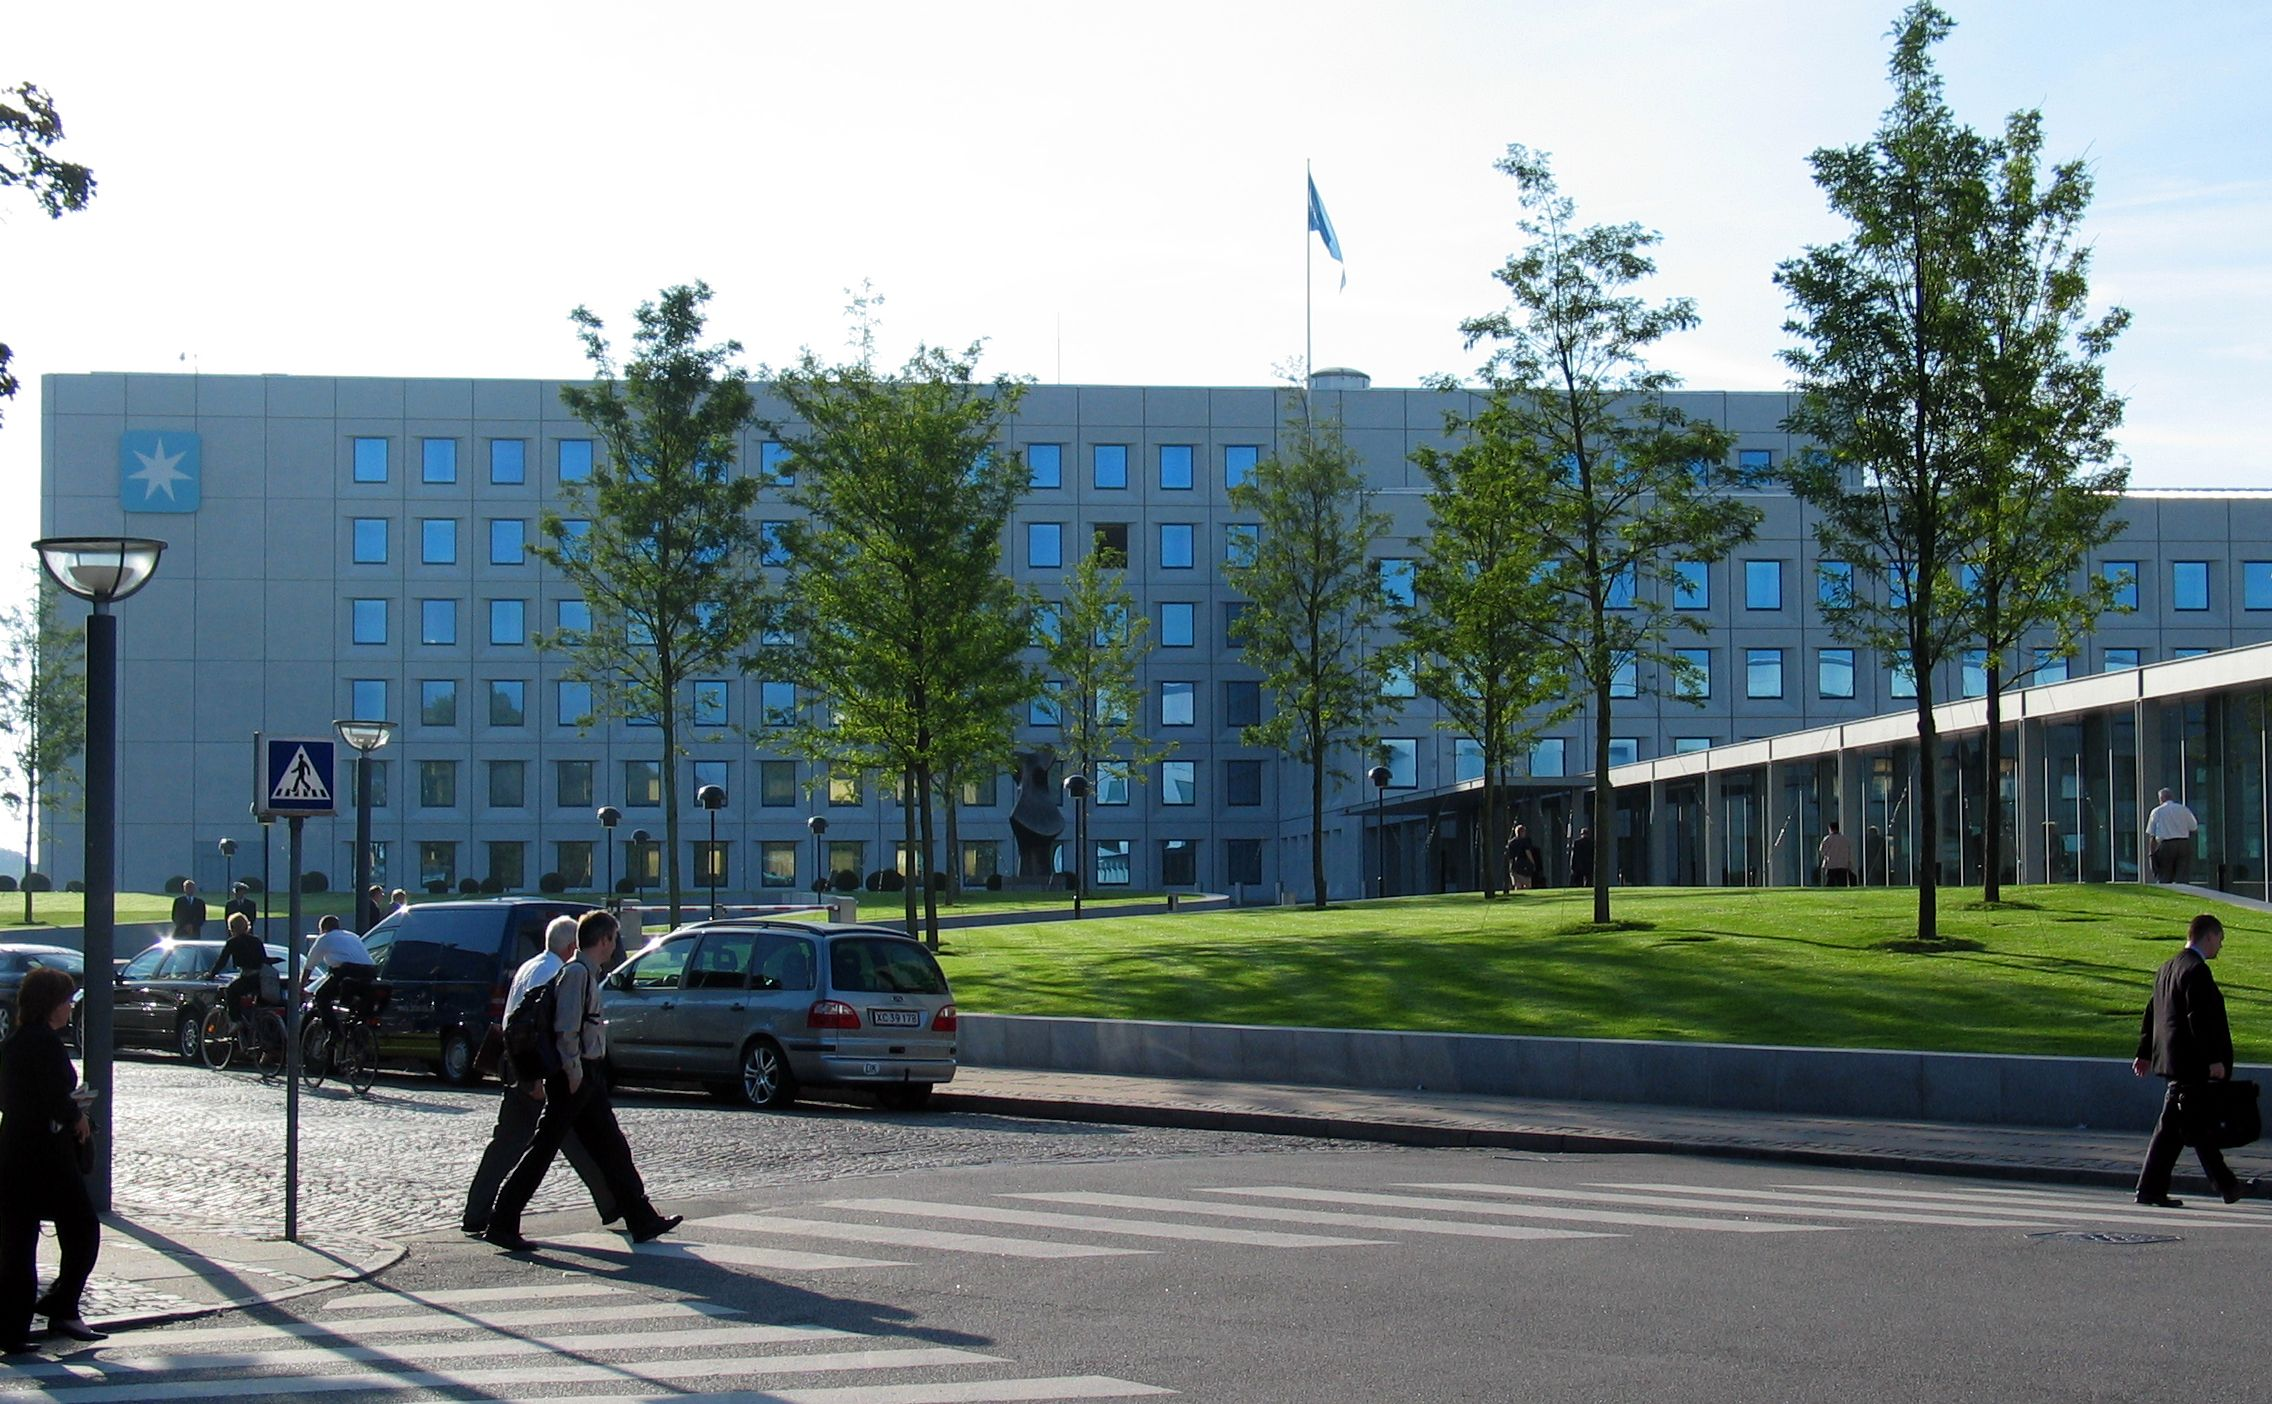 Maersk headquarters, in Denmark   Semco Maritime does not wish to state the value of the contract, which has a major strategic importance for Semco Maritime's Oil & Gas business and which is the largest in the company's history.